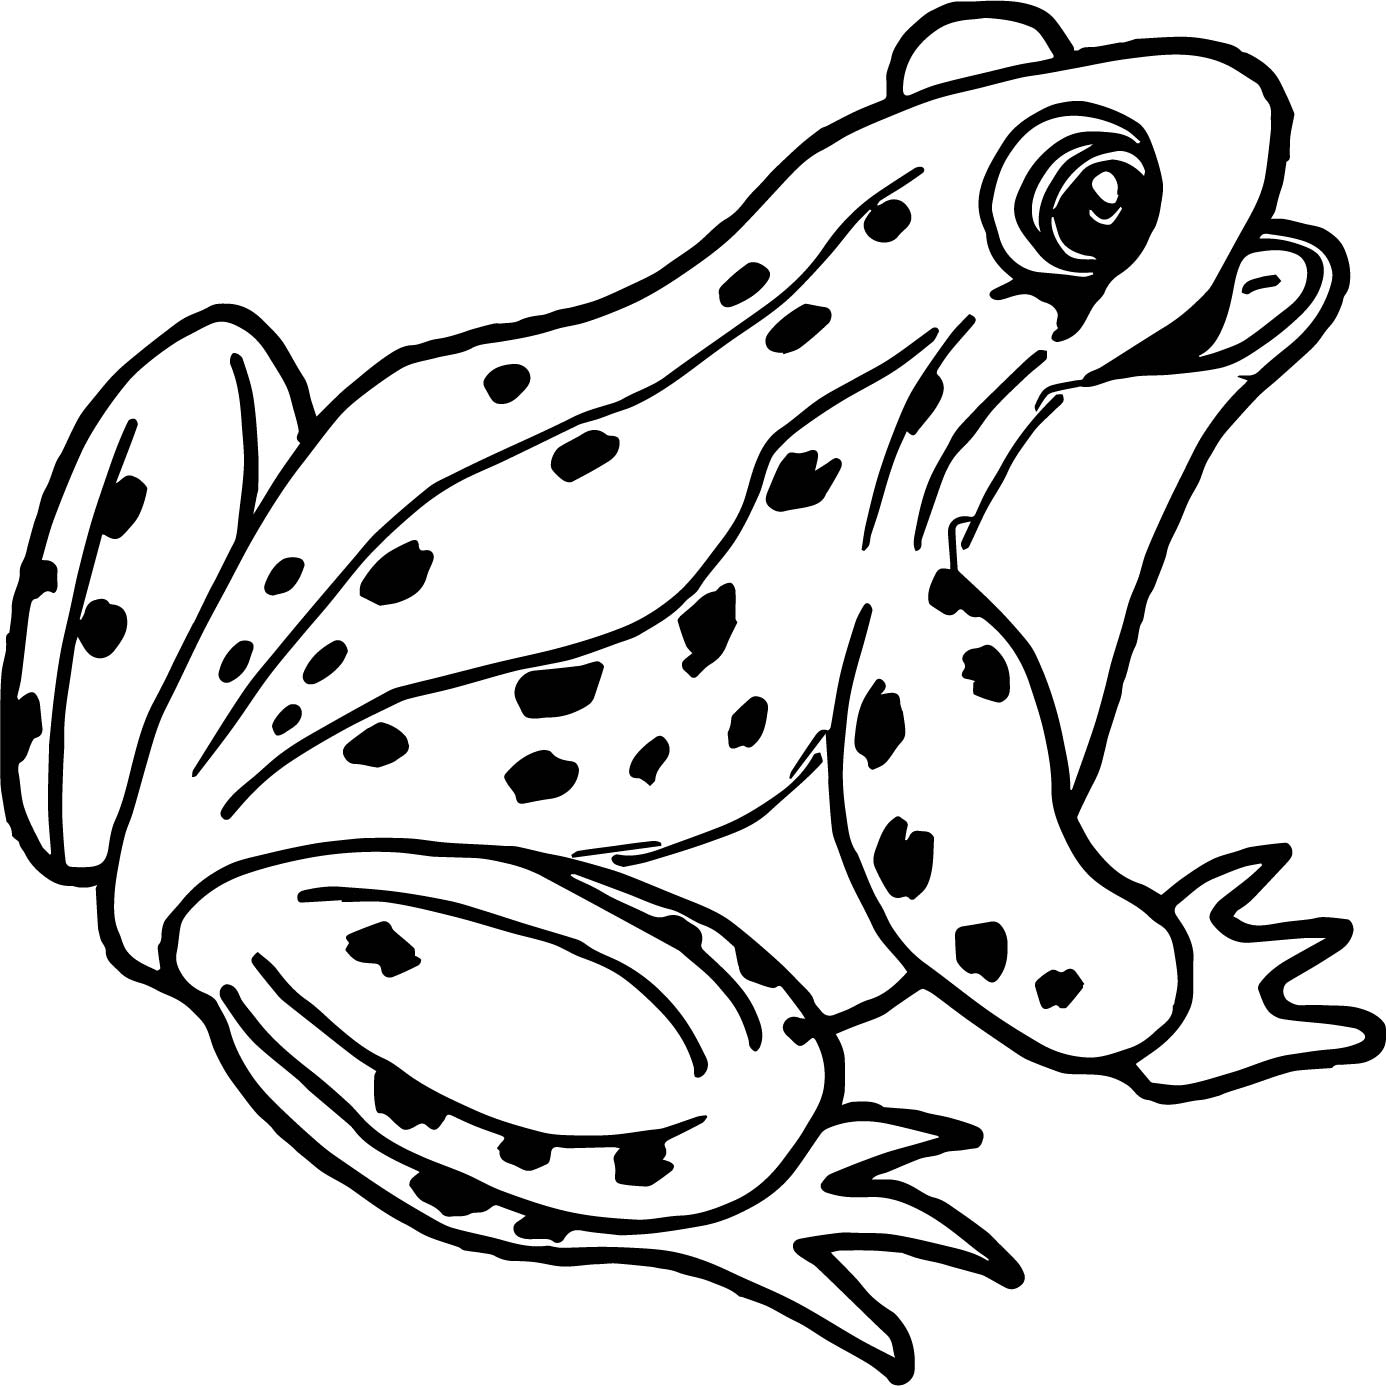 coloring frog outline images 55 free printable frog coloring pages in vector format images coloring frog outline